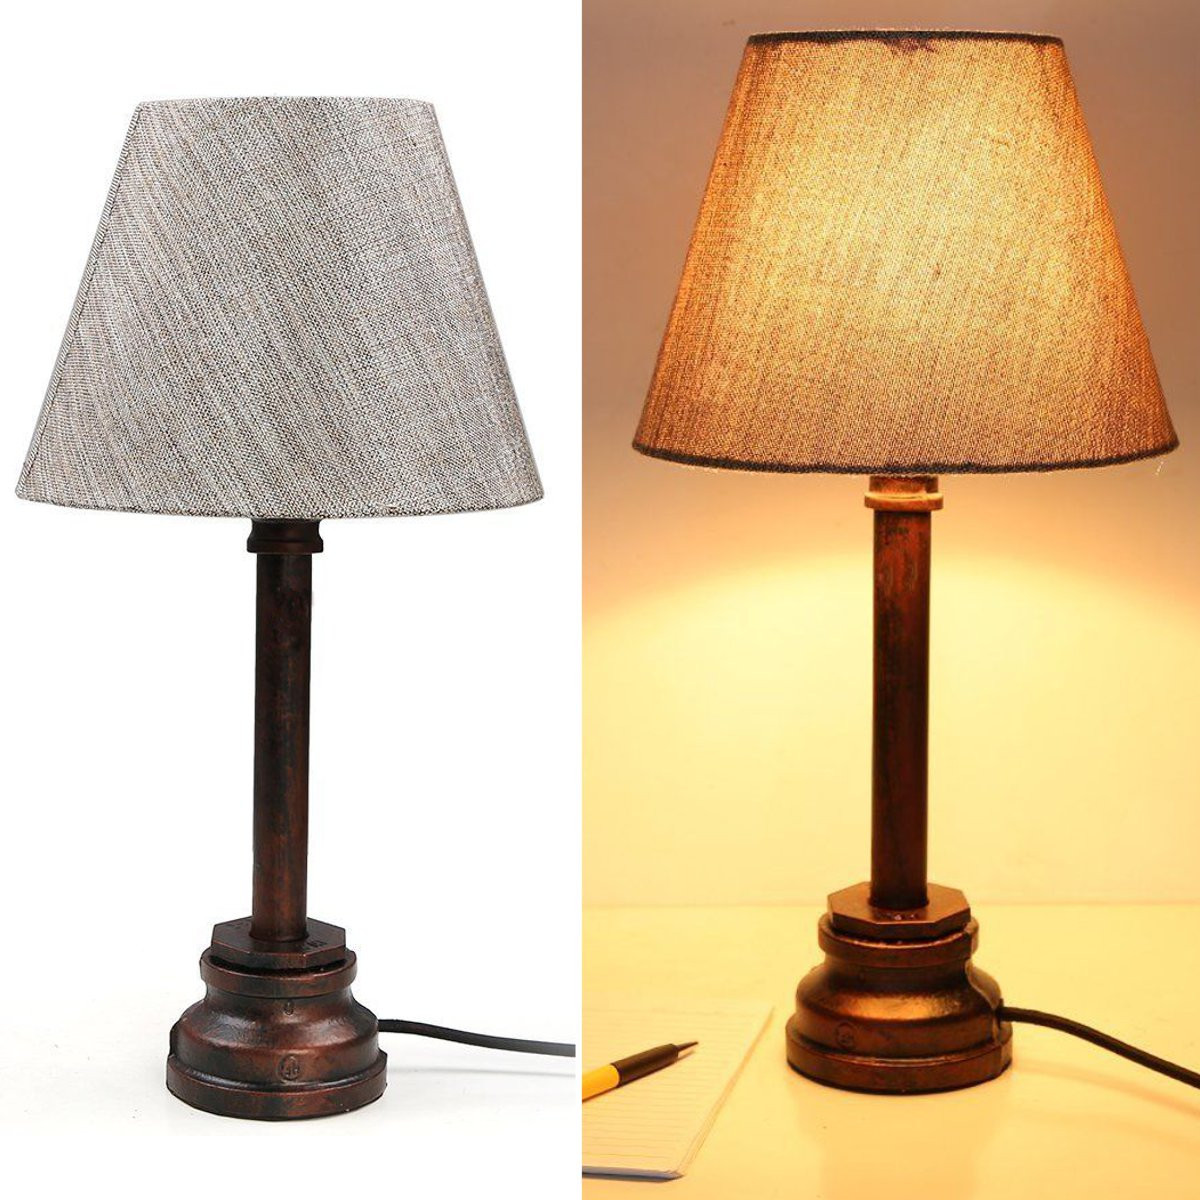 Make Wall Lamp Shades : Buy 2PCS Set Linen Table Wall Lamp Shades Urbanest Chandelier Desk Fabrics Droplight #Goodbuy ...